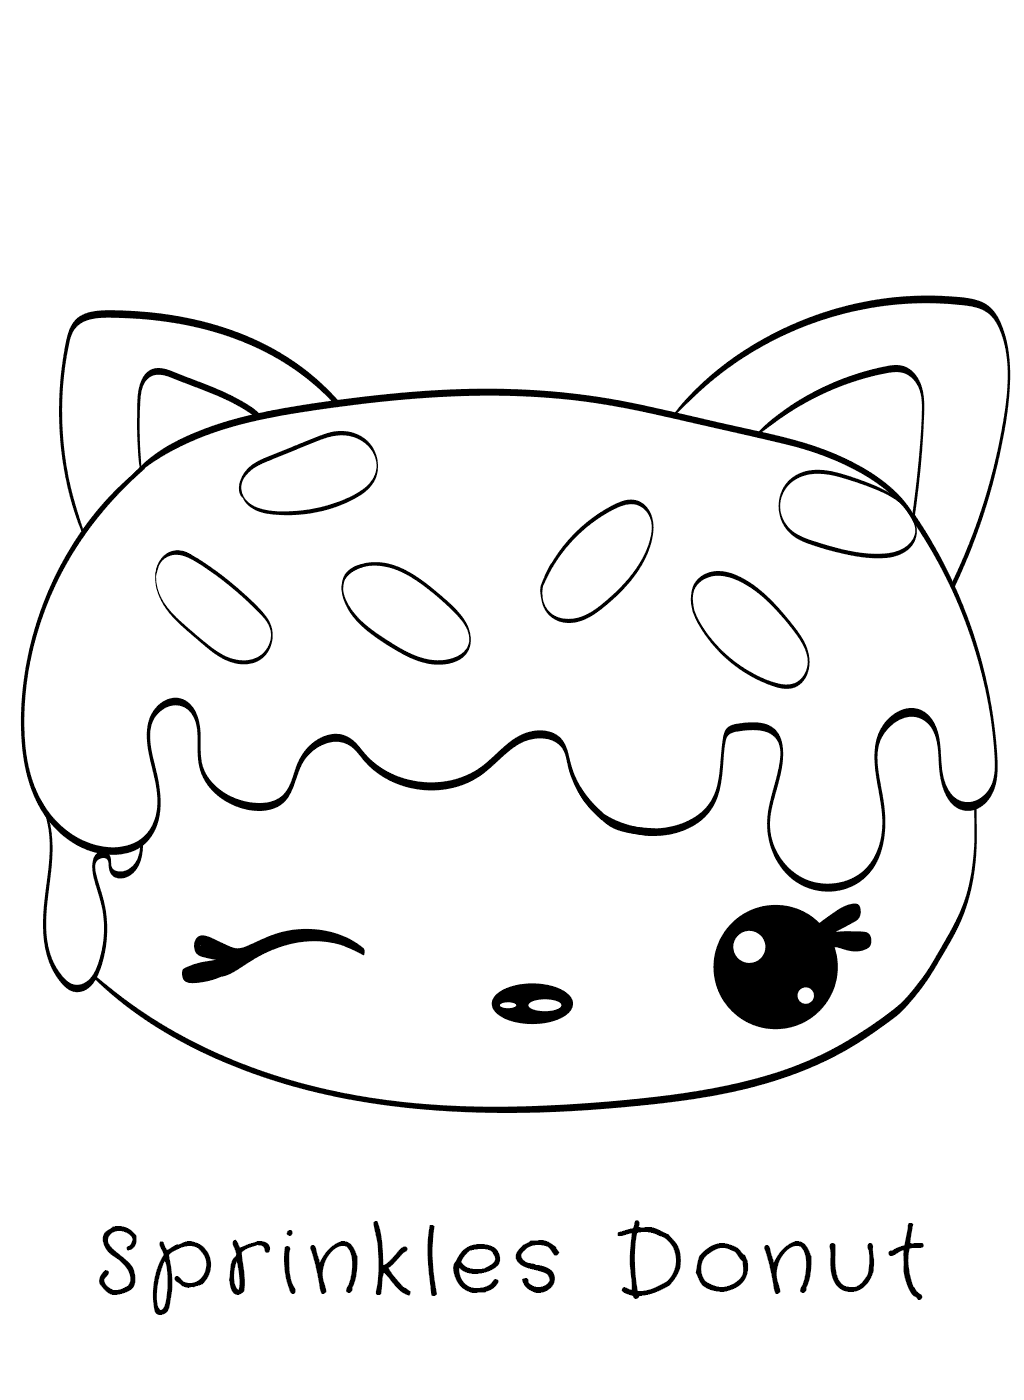 coloring sheet donut donut coloring pages images sketch coloring page coloring sheet donut